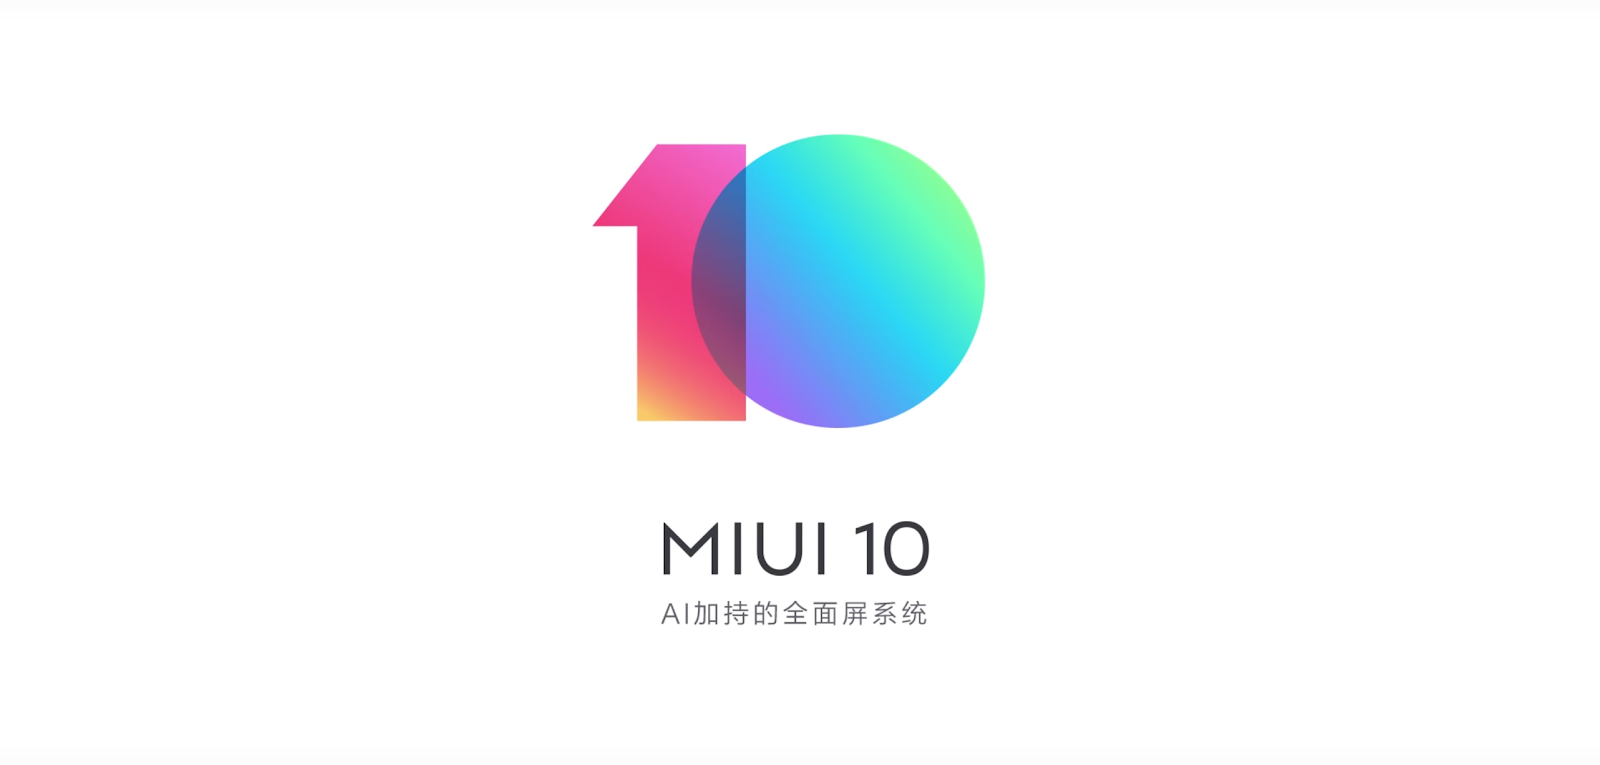 Link] MIUI 10 Rom Download, Supported Devices Download Now